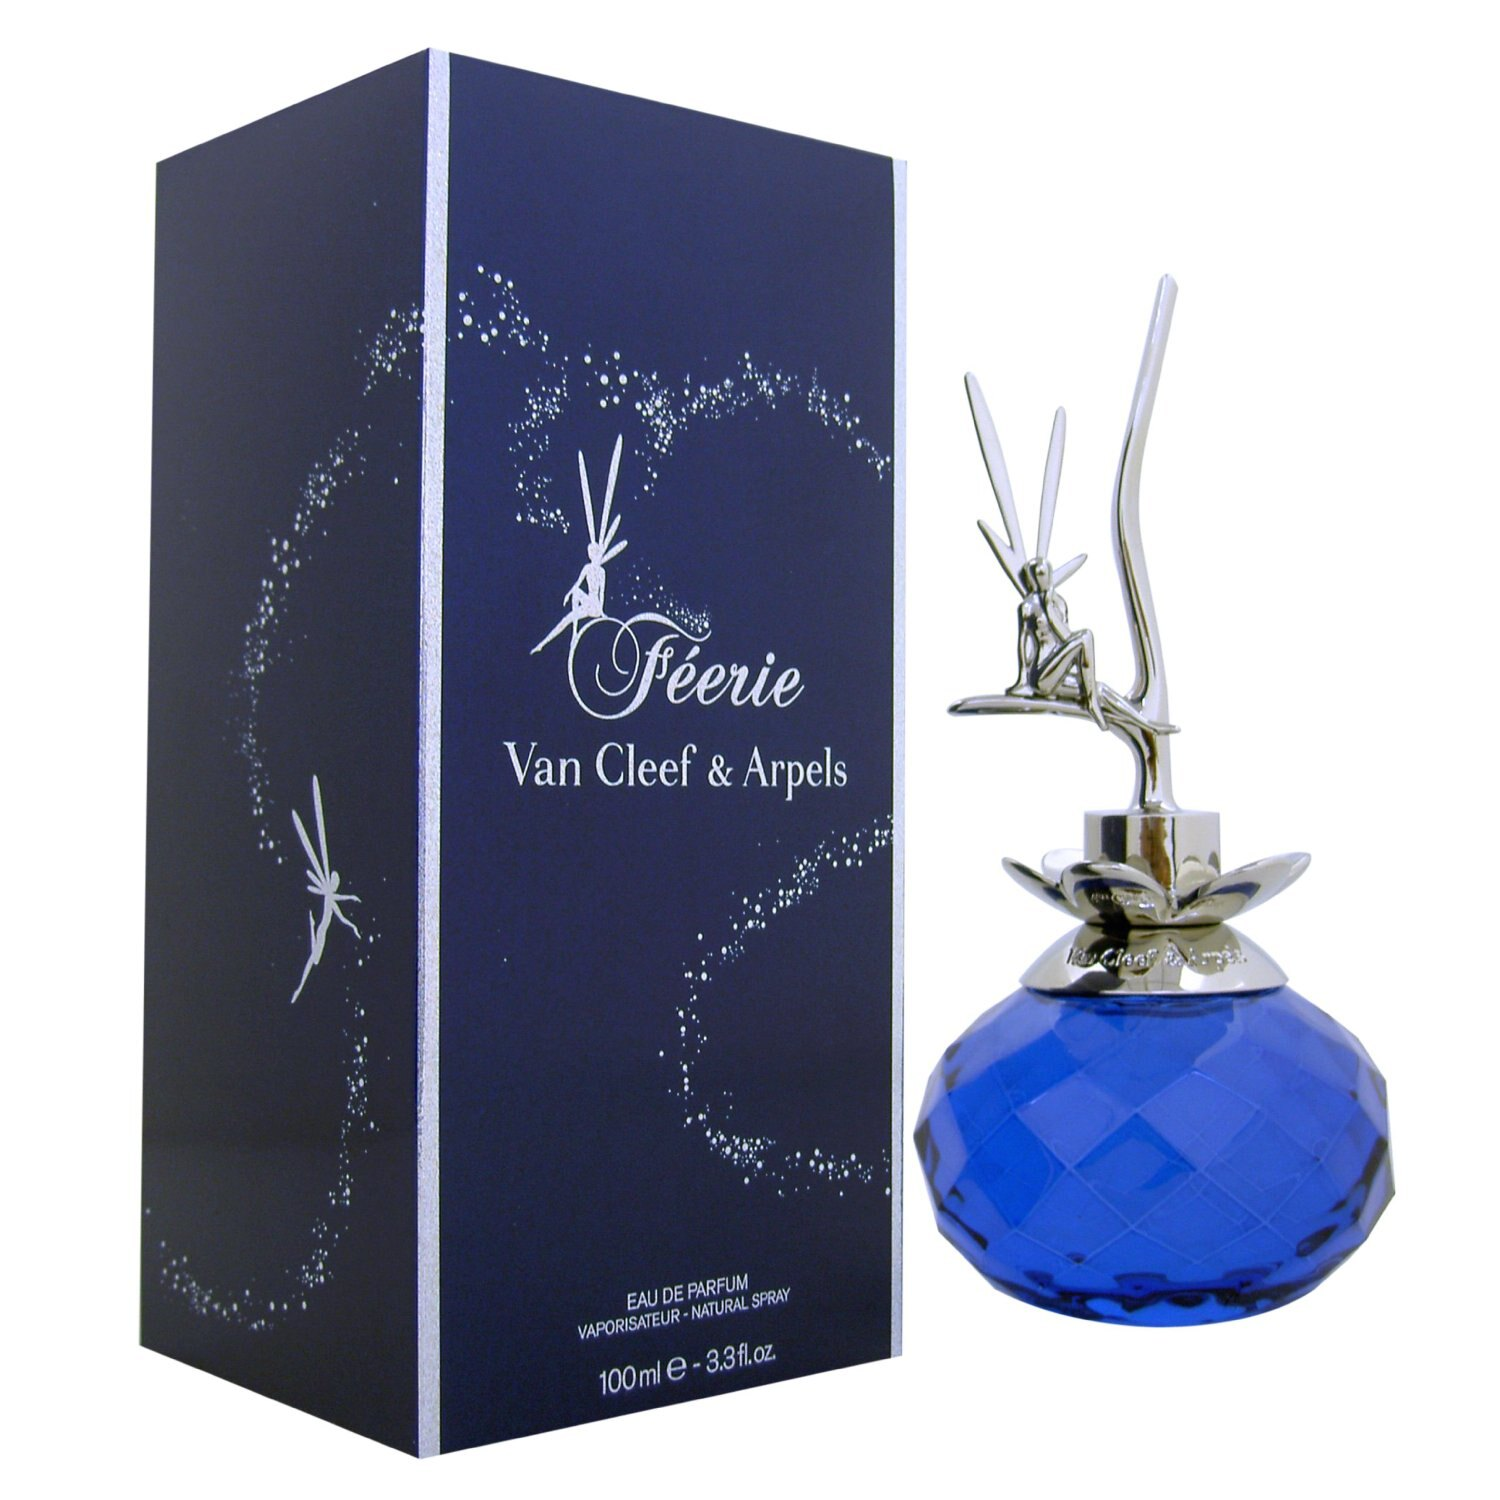 FEERIE BY VAN CLEEF eau de parfum 100ml 0